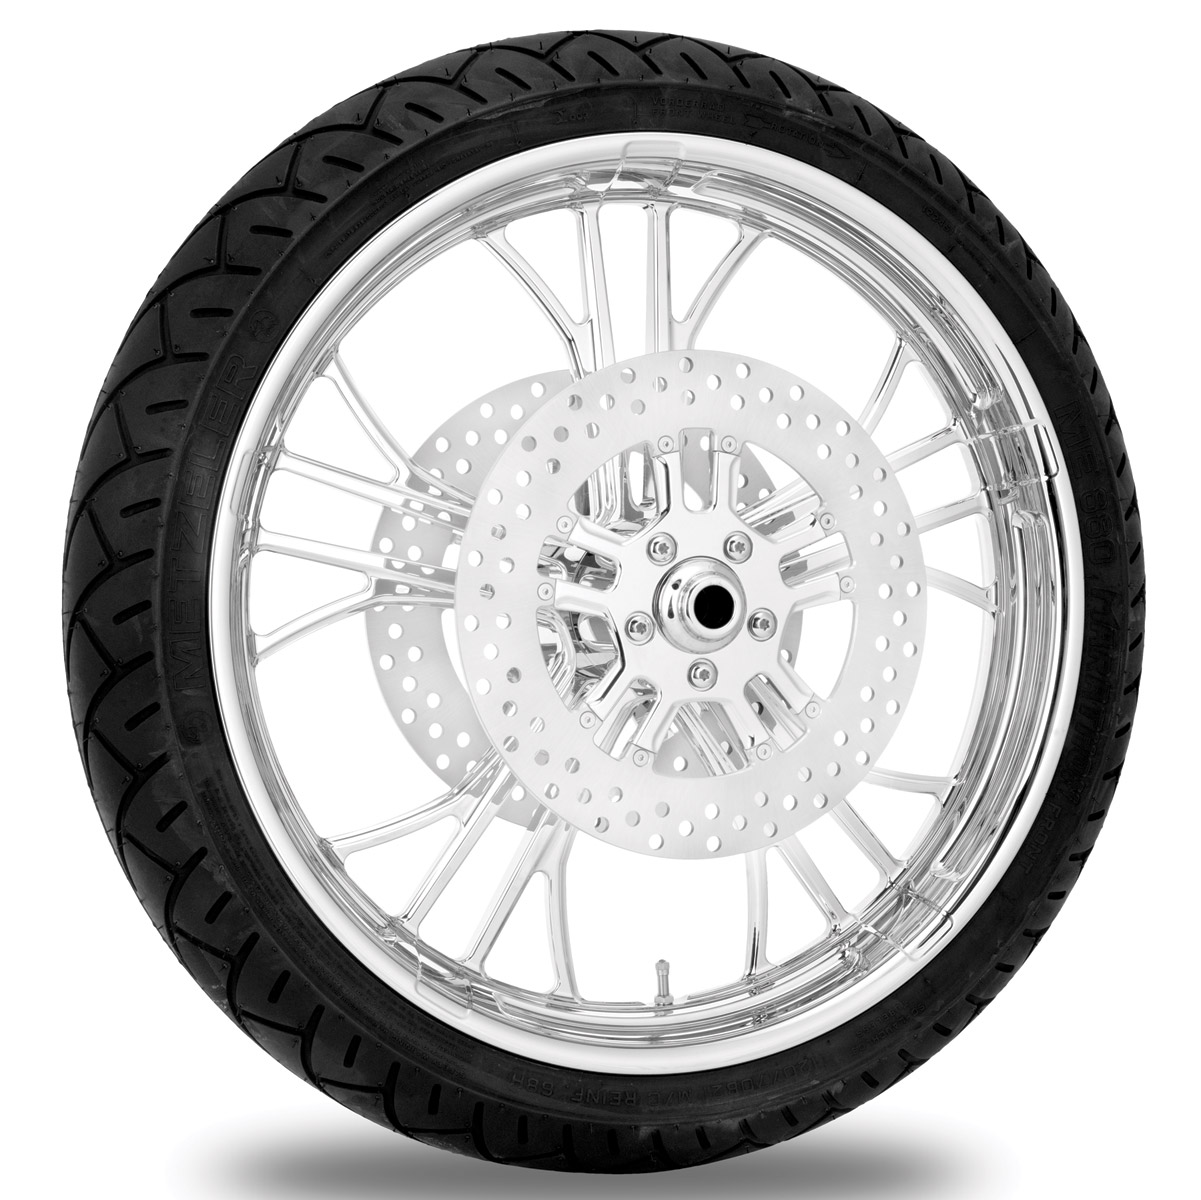 Performance Machine Dixon Chrome Front Wheel Package, 21″ x 3.5 with ABS